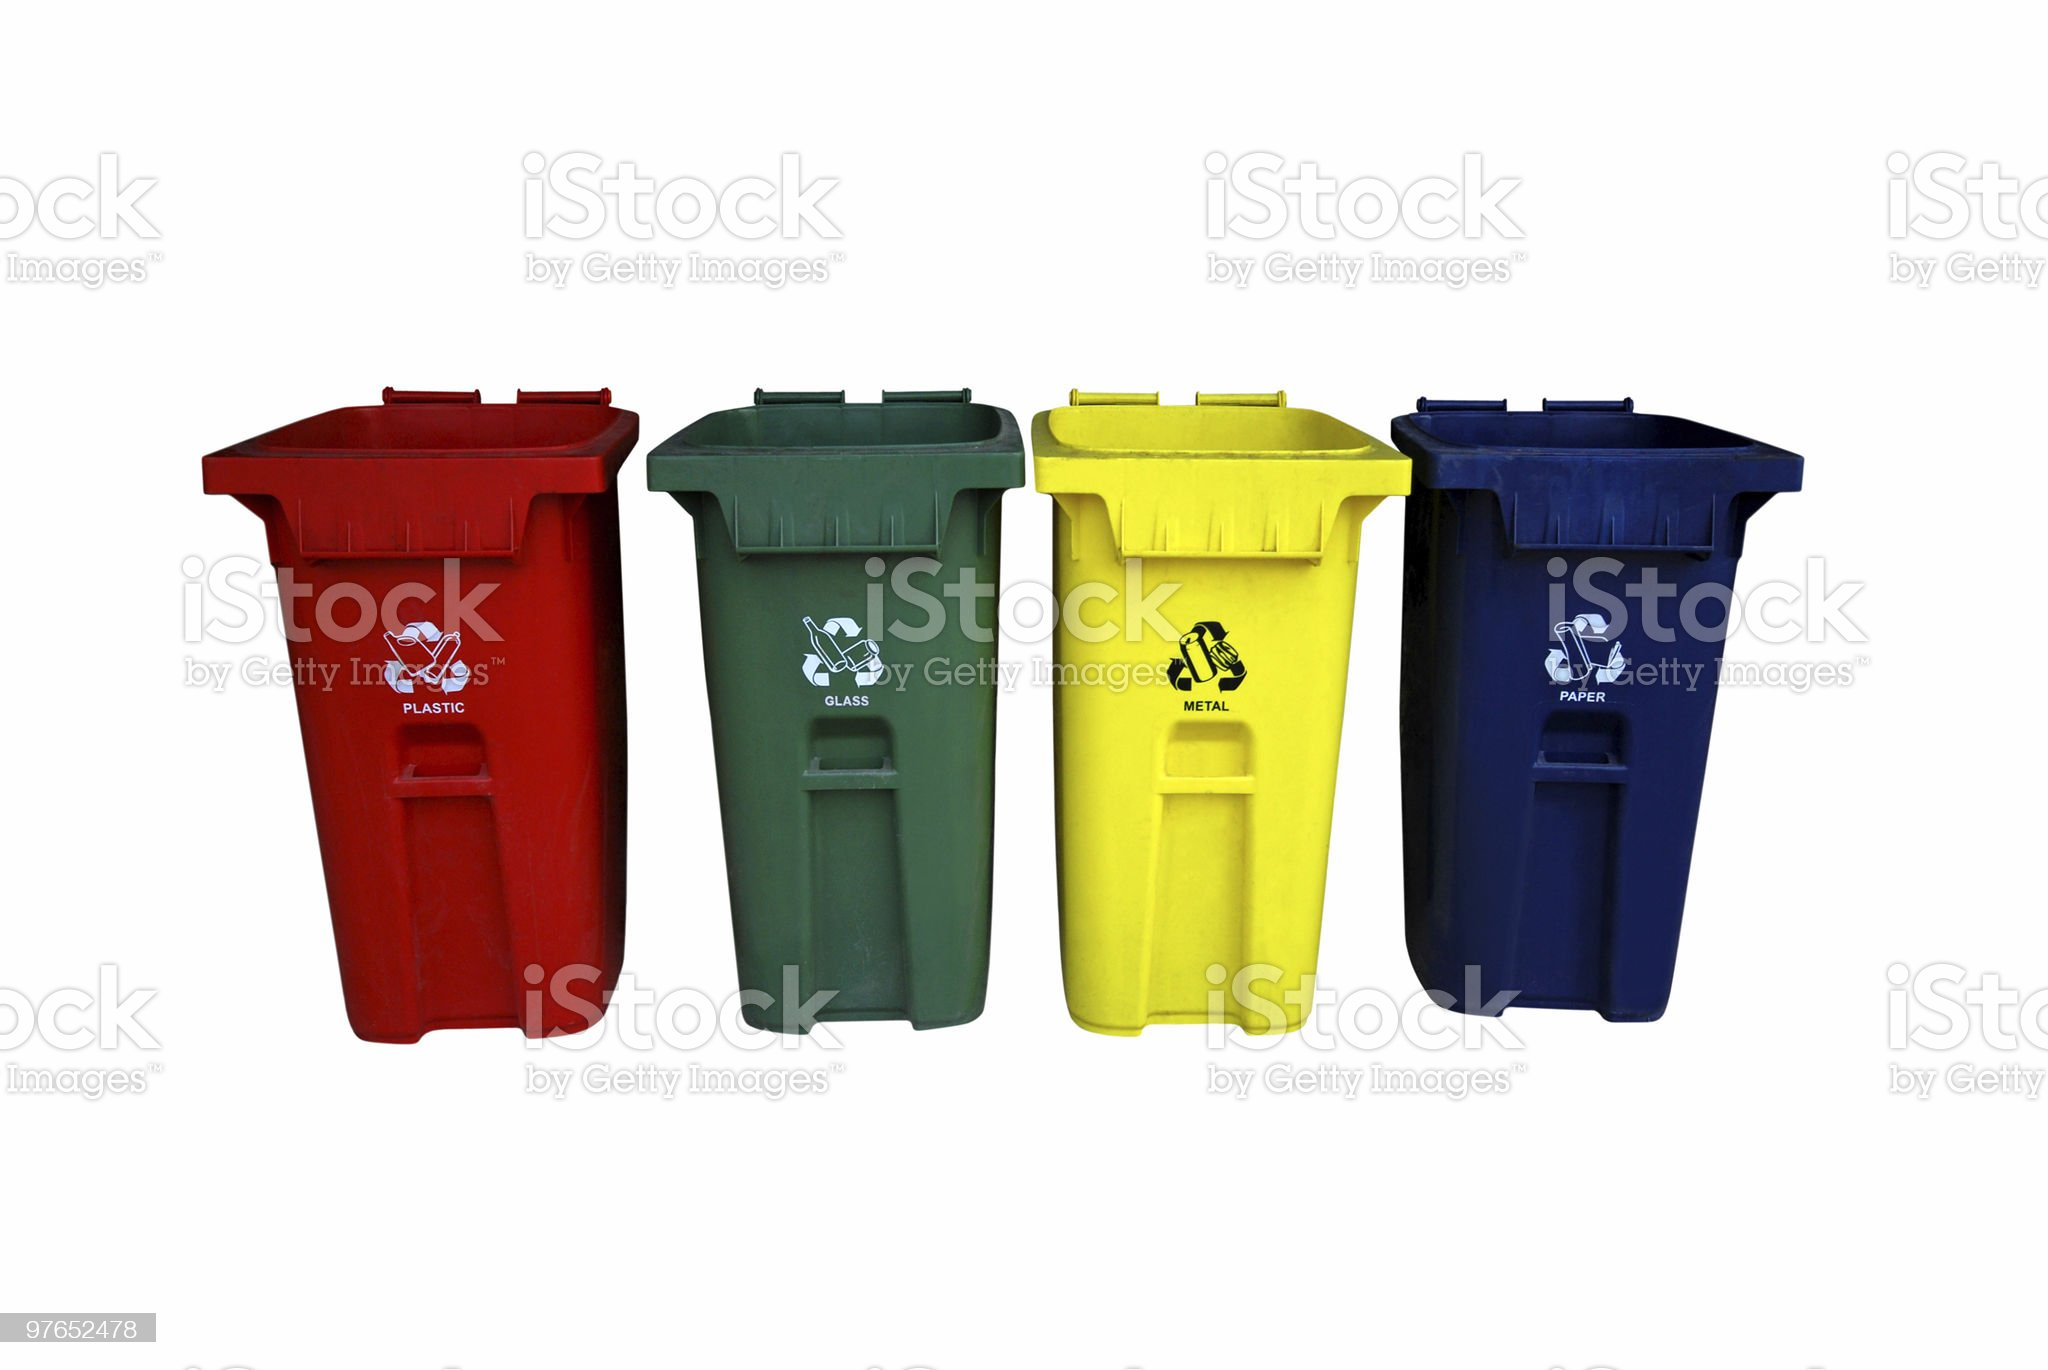 Recycle bins - Clipping path royalty-free stock photo